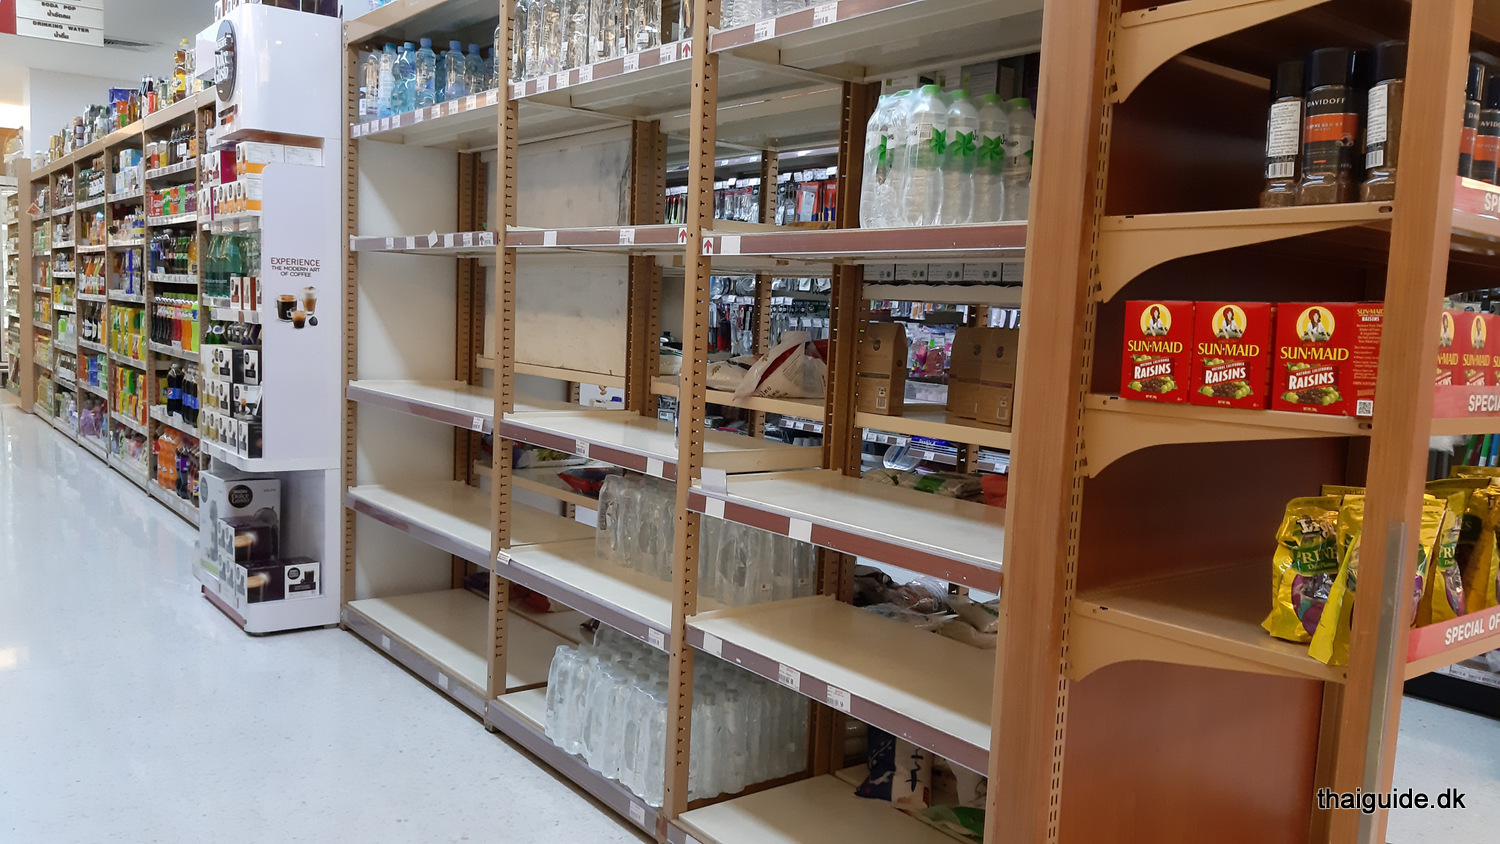 www.thaiguide.dk/images/forum/covid19/foodland-16032020-4.jpg